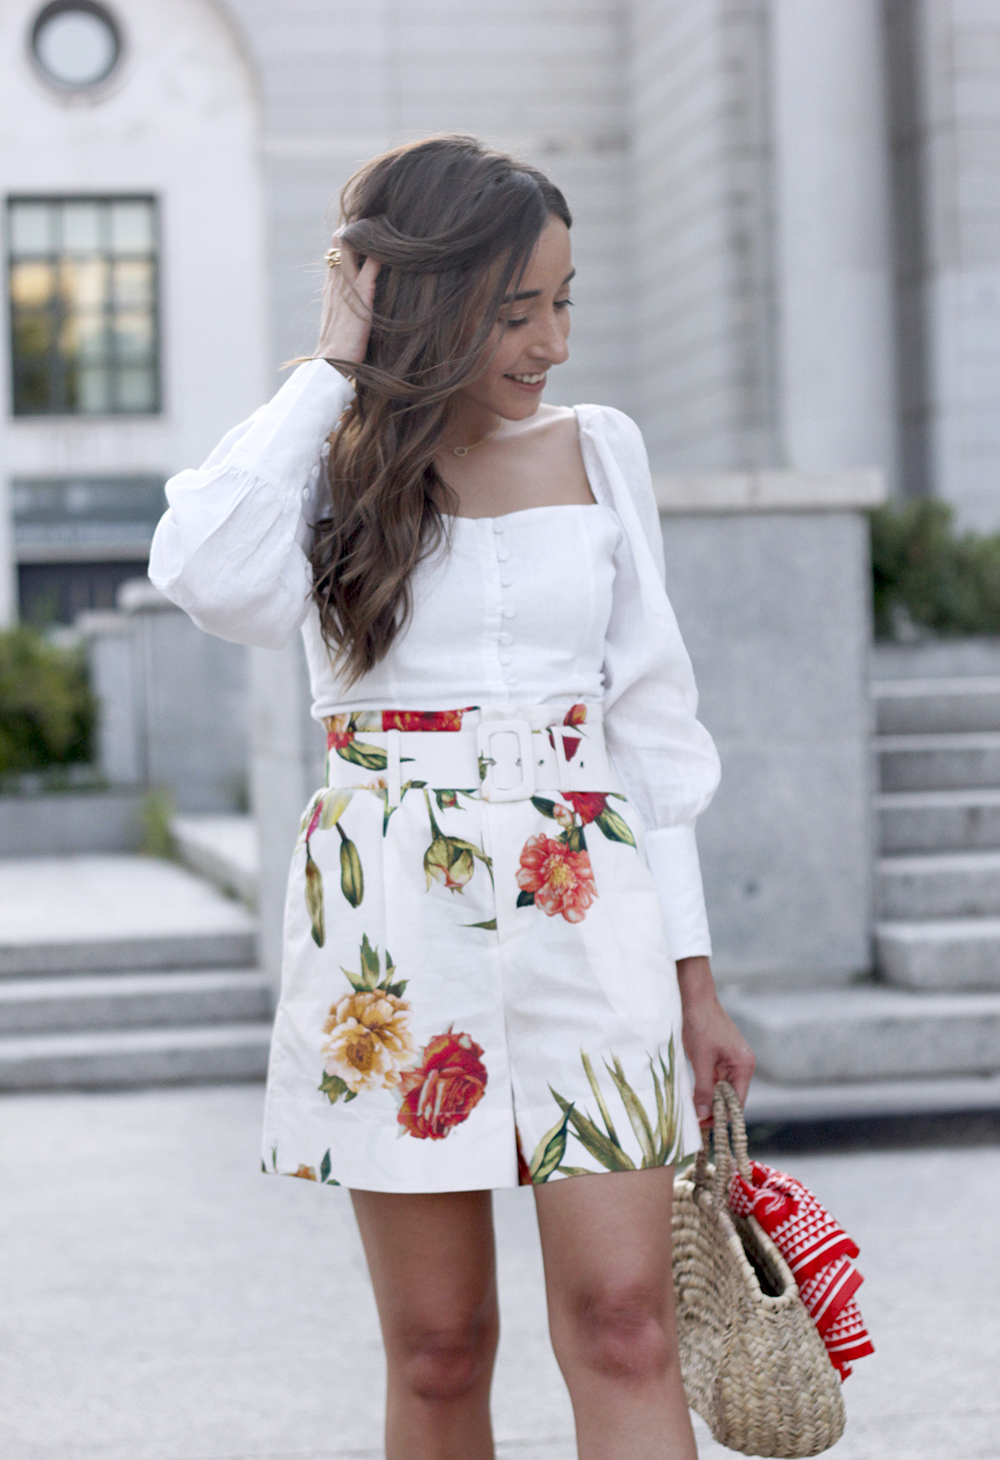 floral print shorts linnen top suede heels street style summer outfit 20192